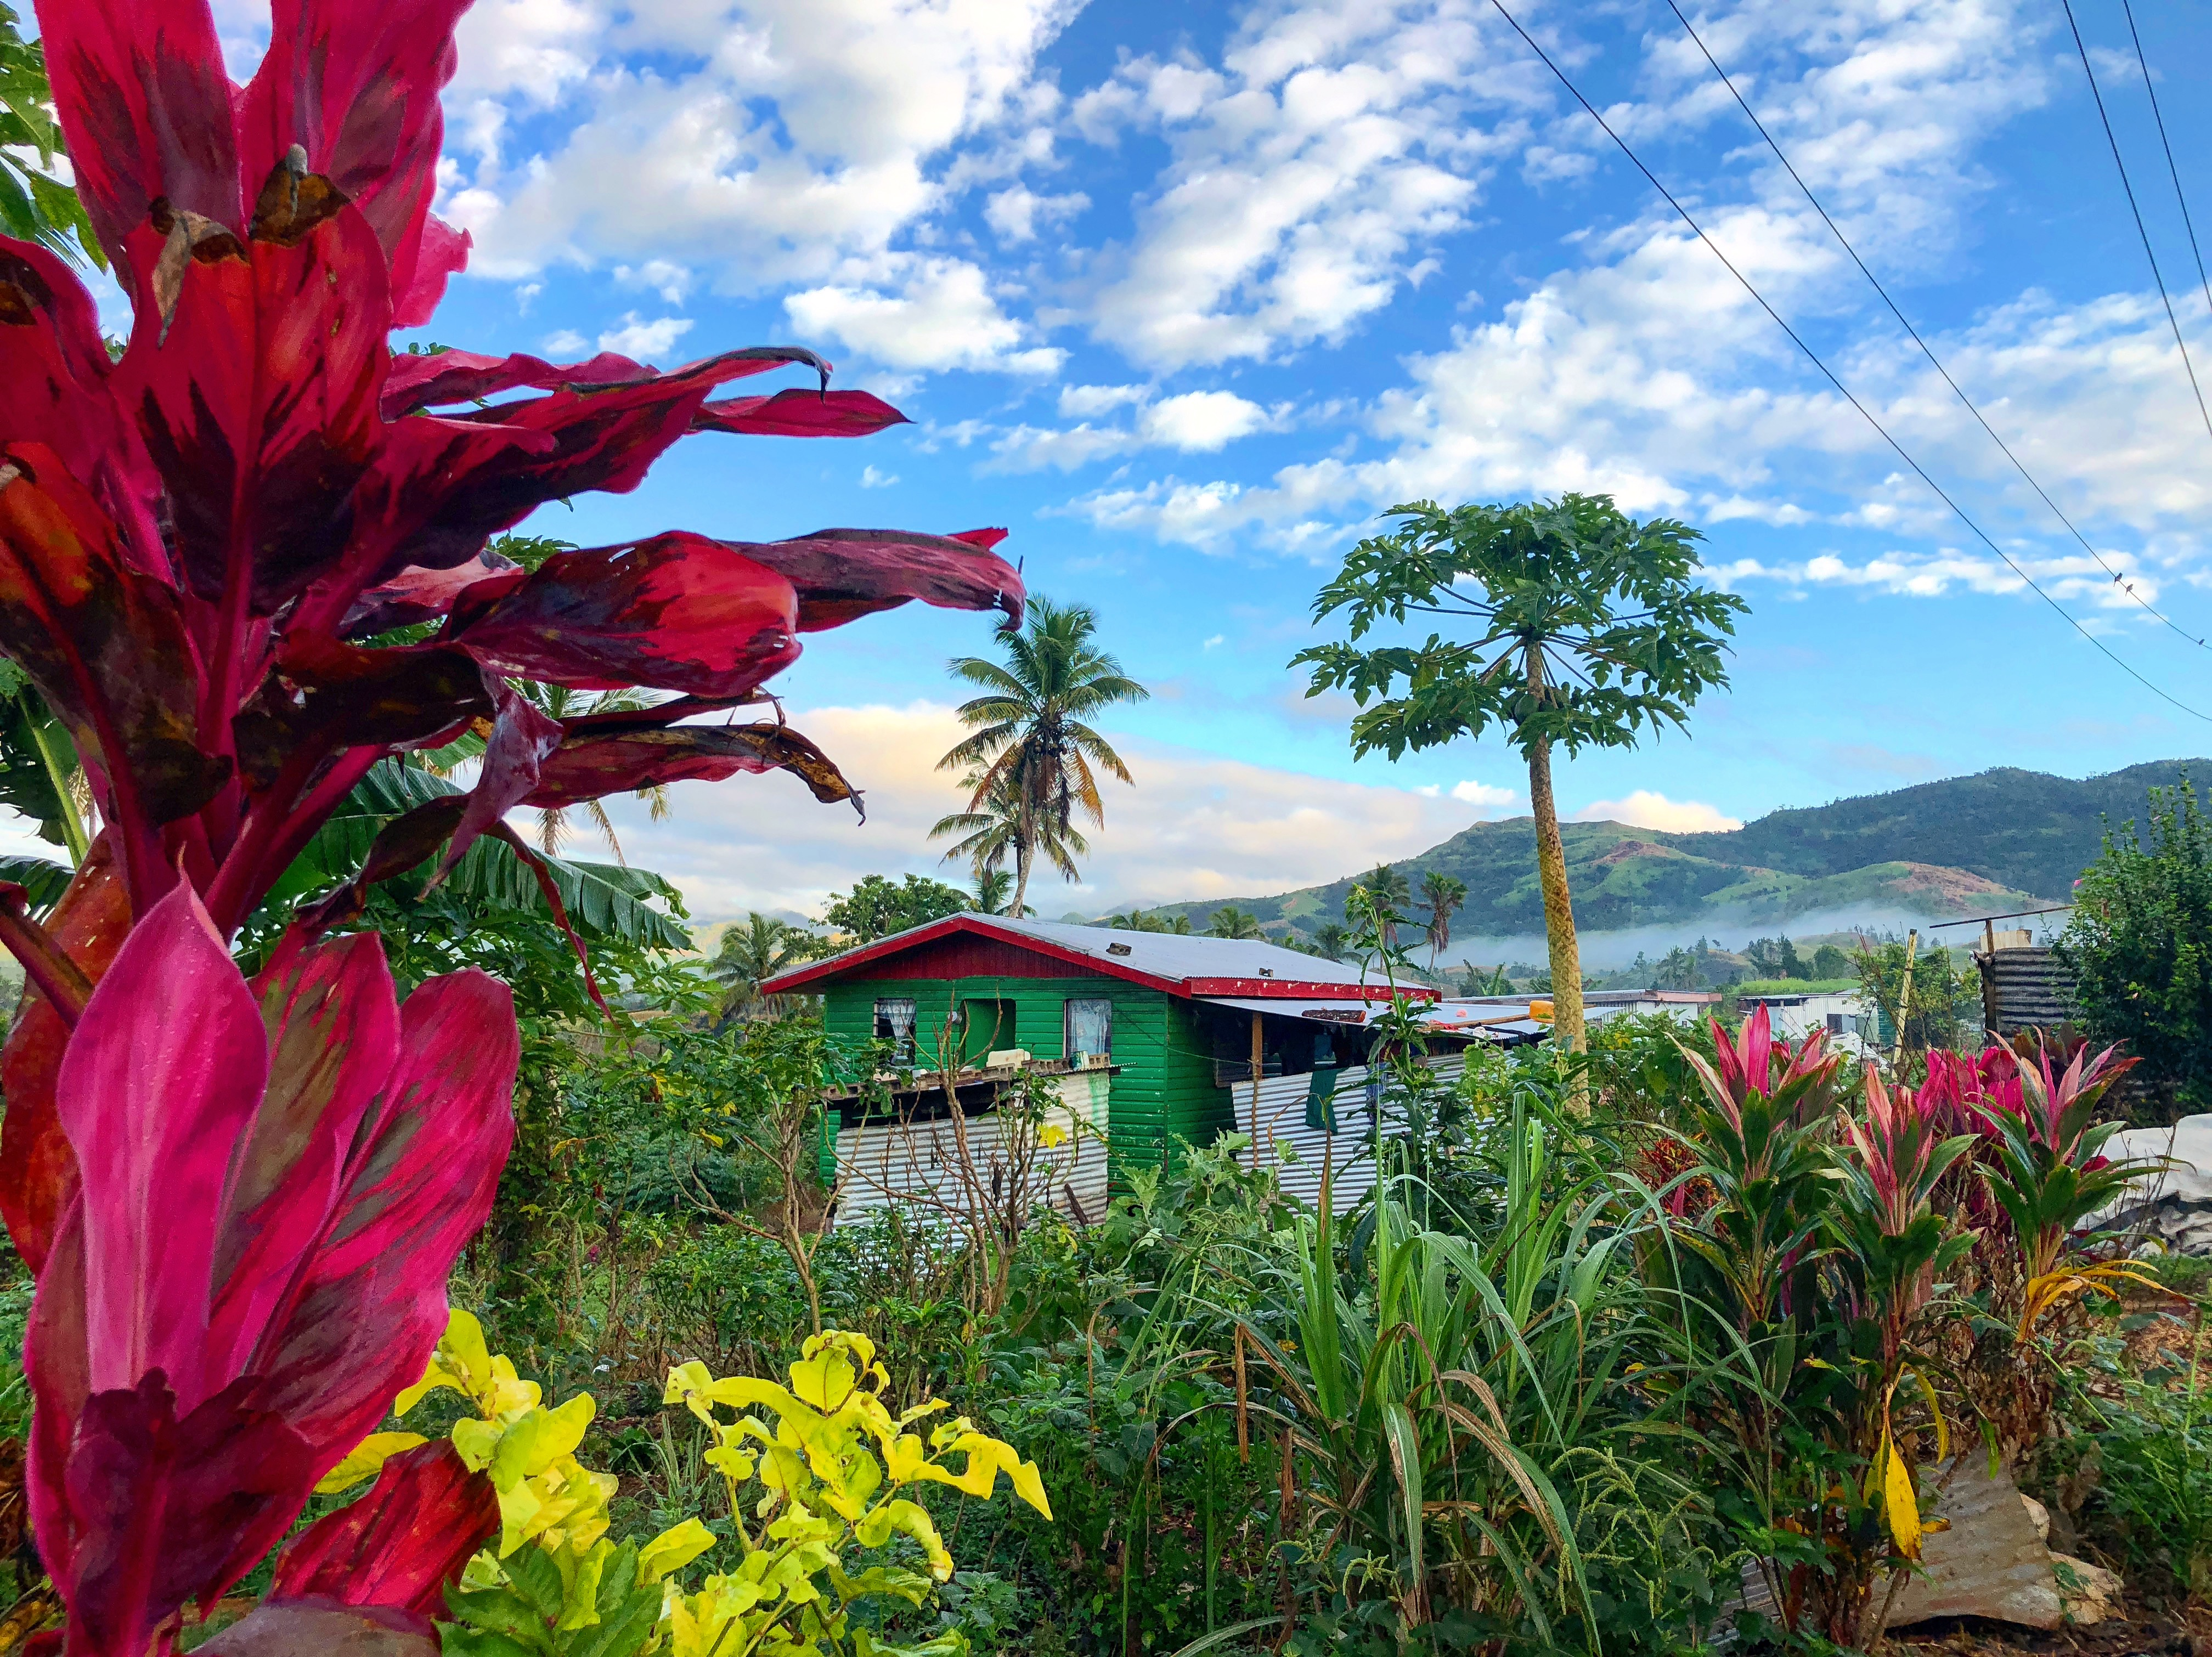 Summer Program - Health and Well Being | Global Works - Fiji Islands: Building Community